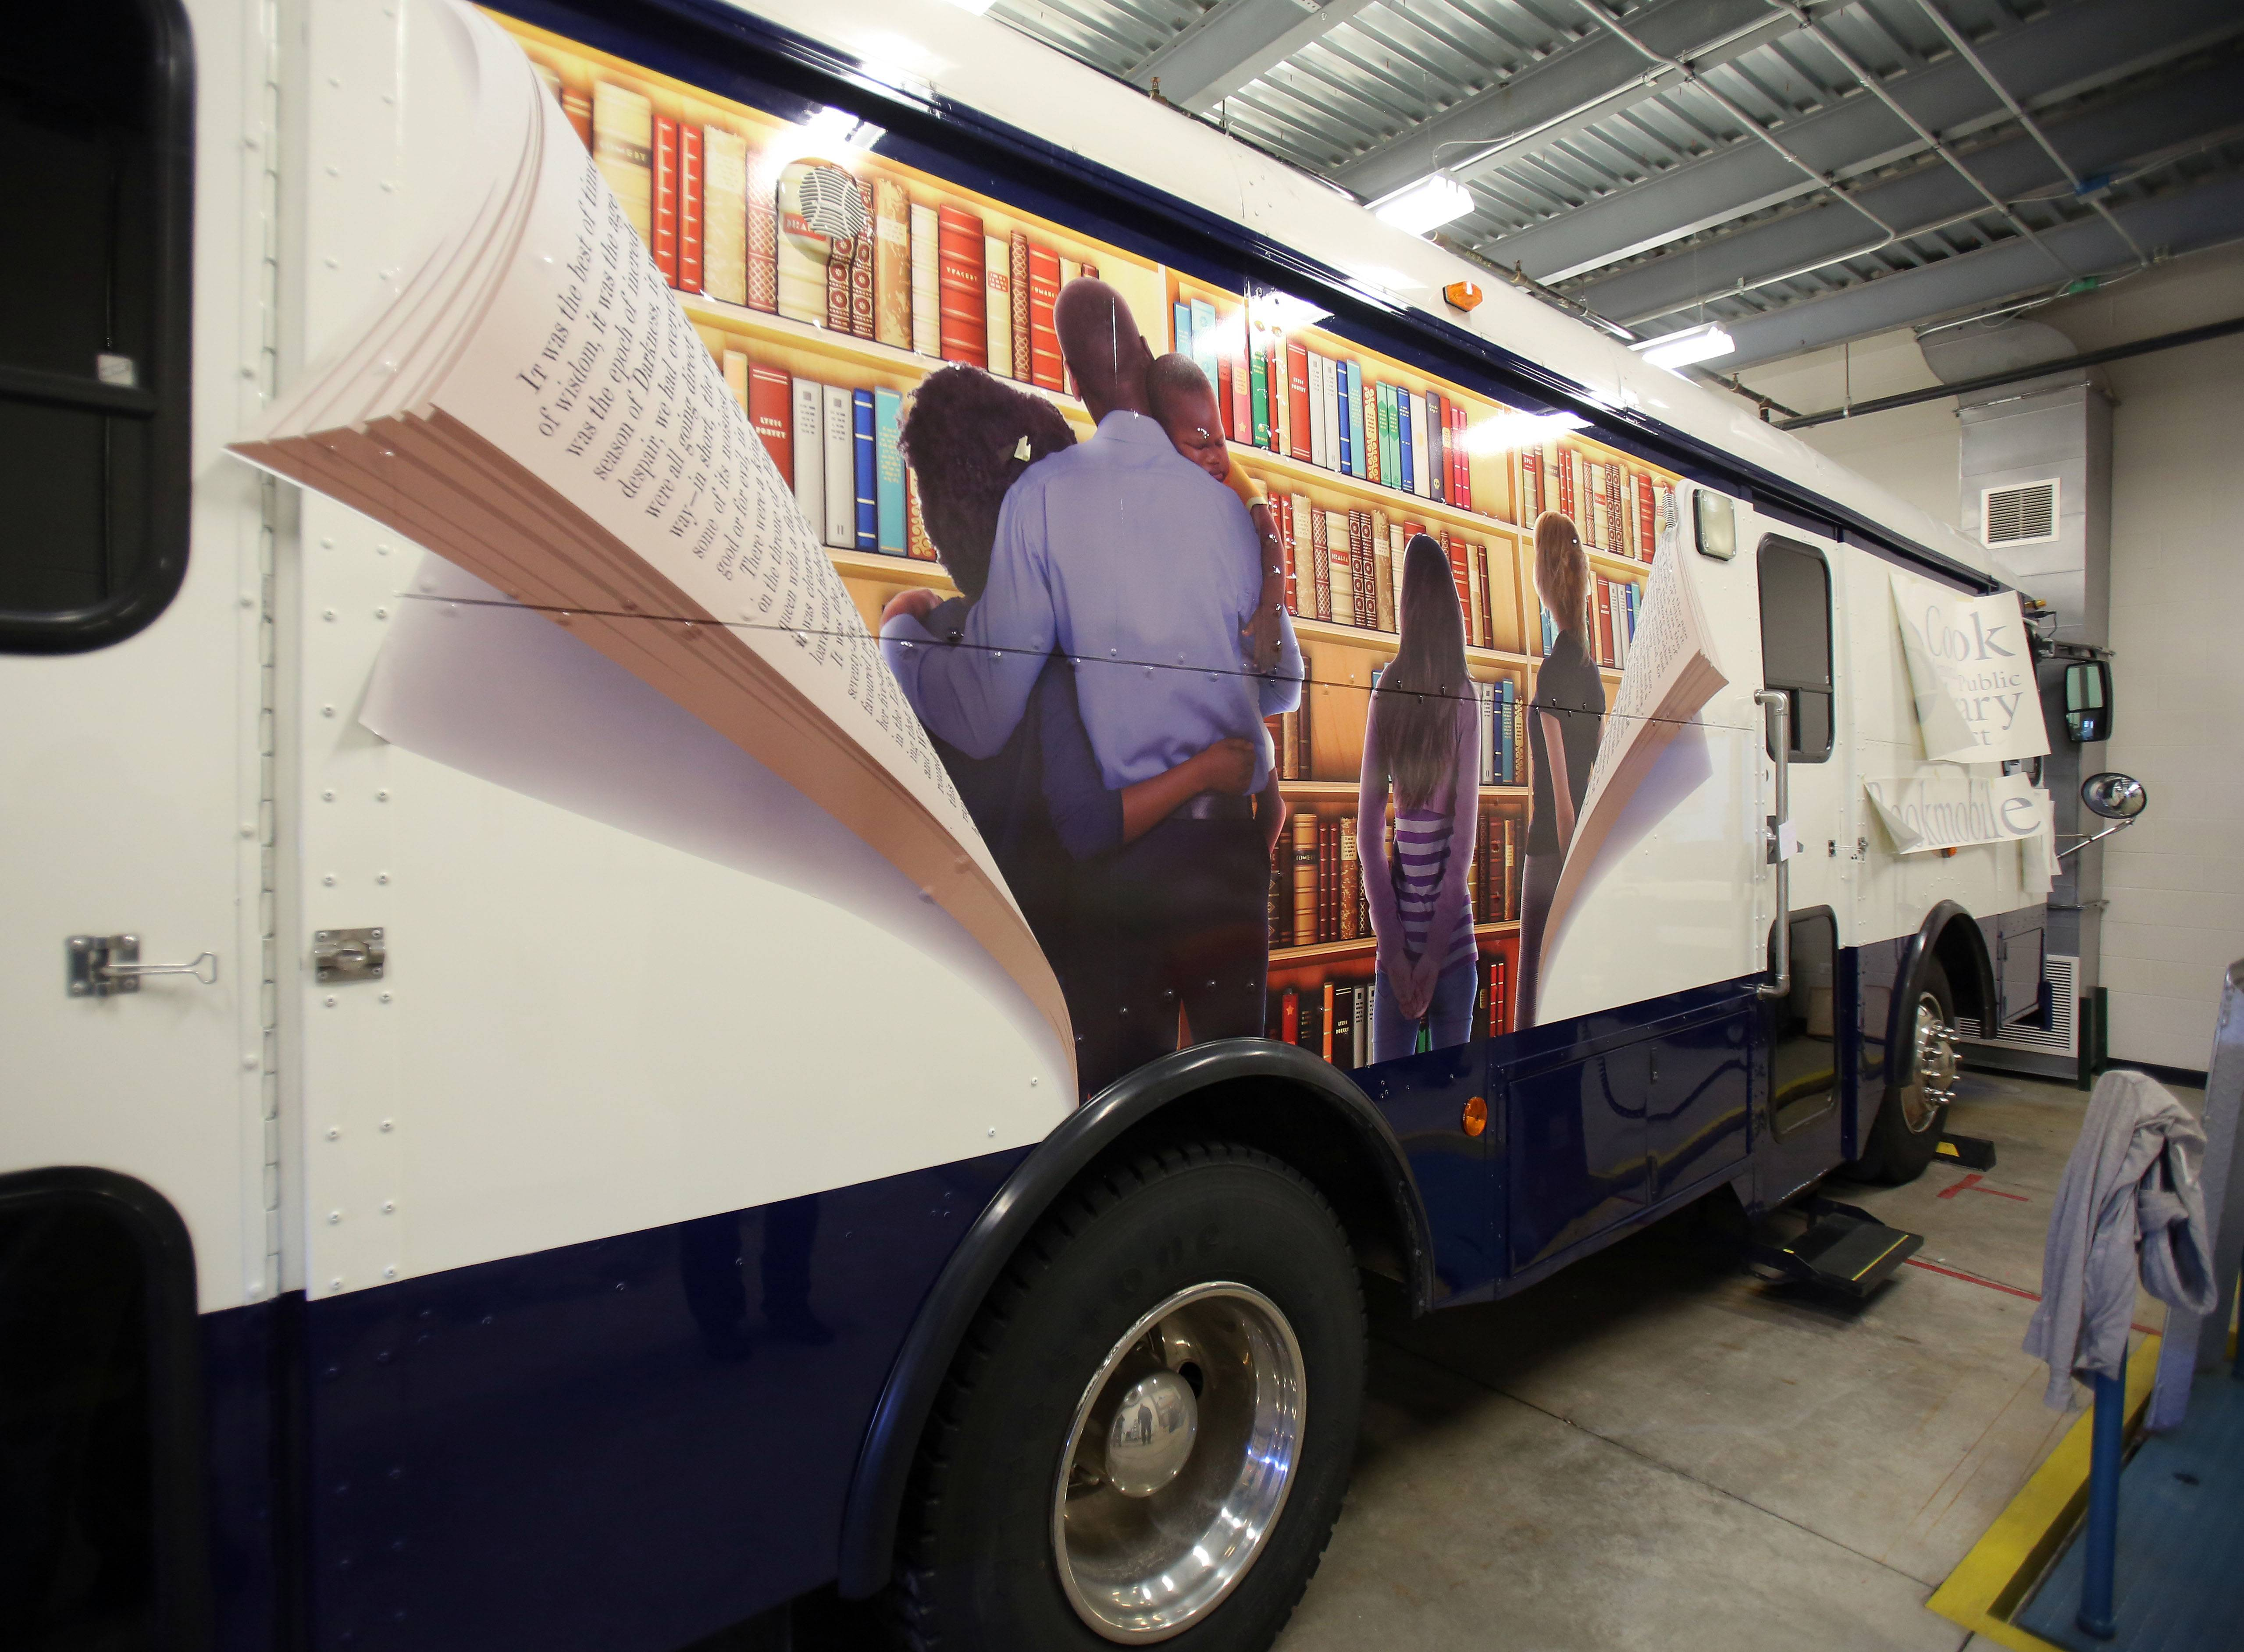 The Cook Memorial Public Library District's bookmobile got a new decorative wrap Friday, thanks to a donation from a community group that supports the library.